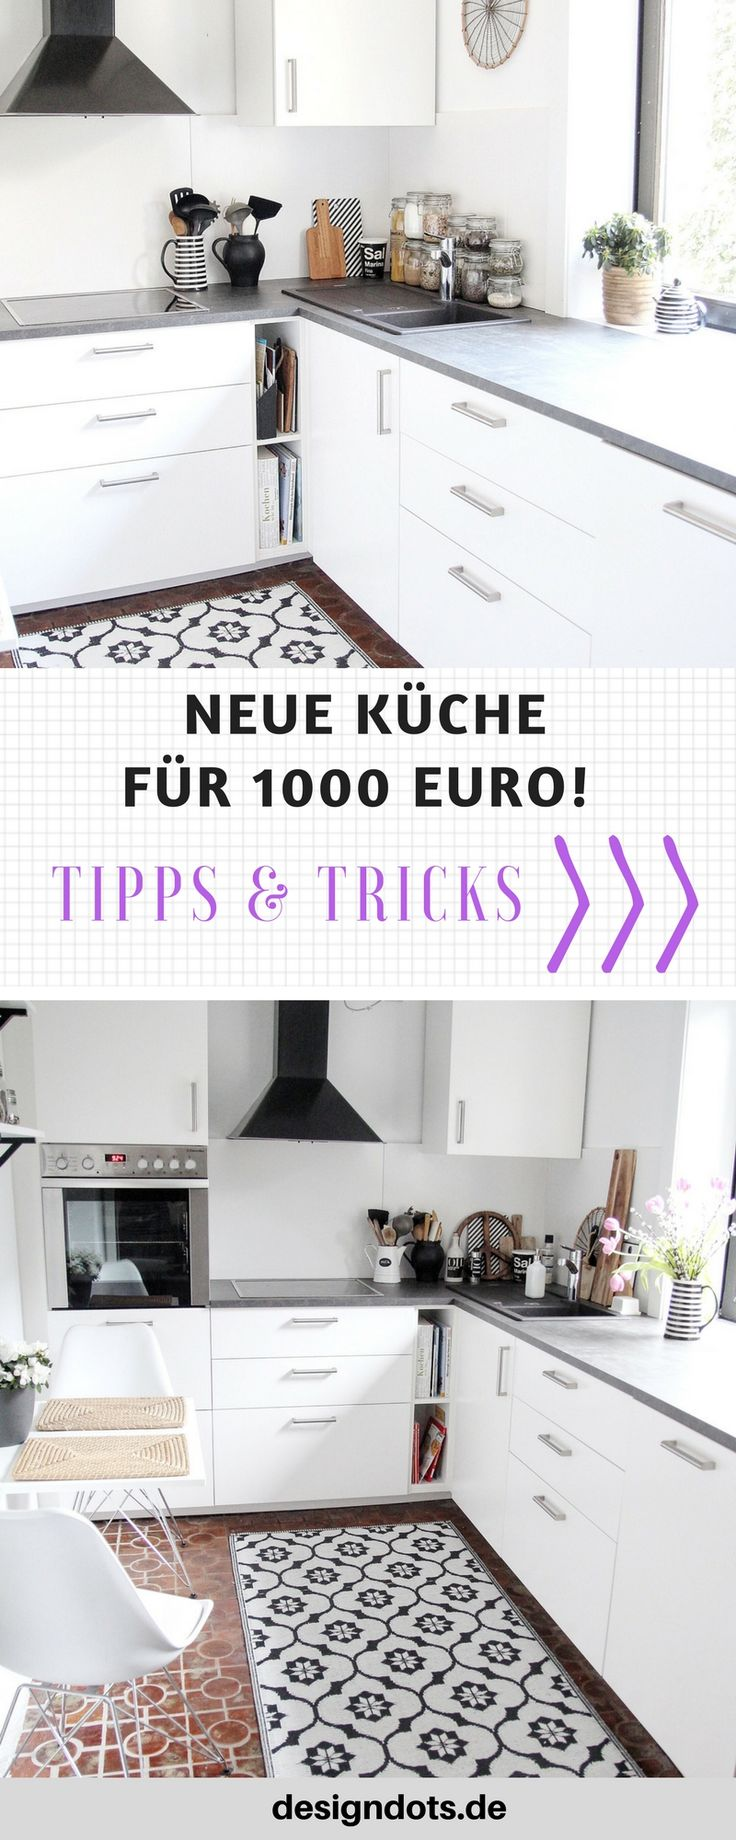 1253 best KÜCHE images on Pinterest | Kitchens, Home ideas and ...